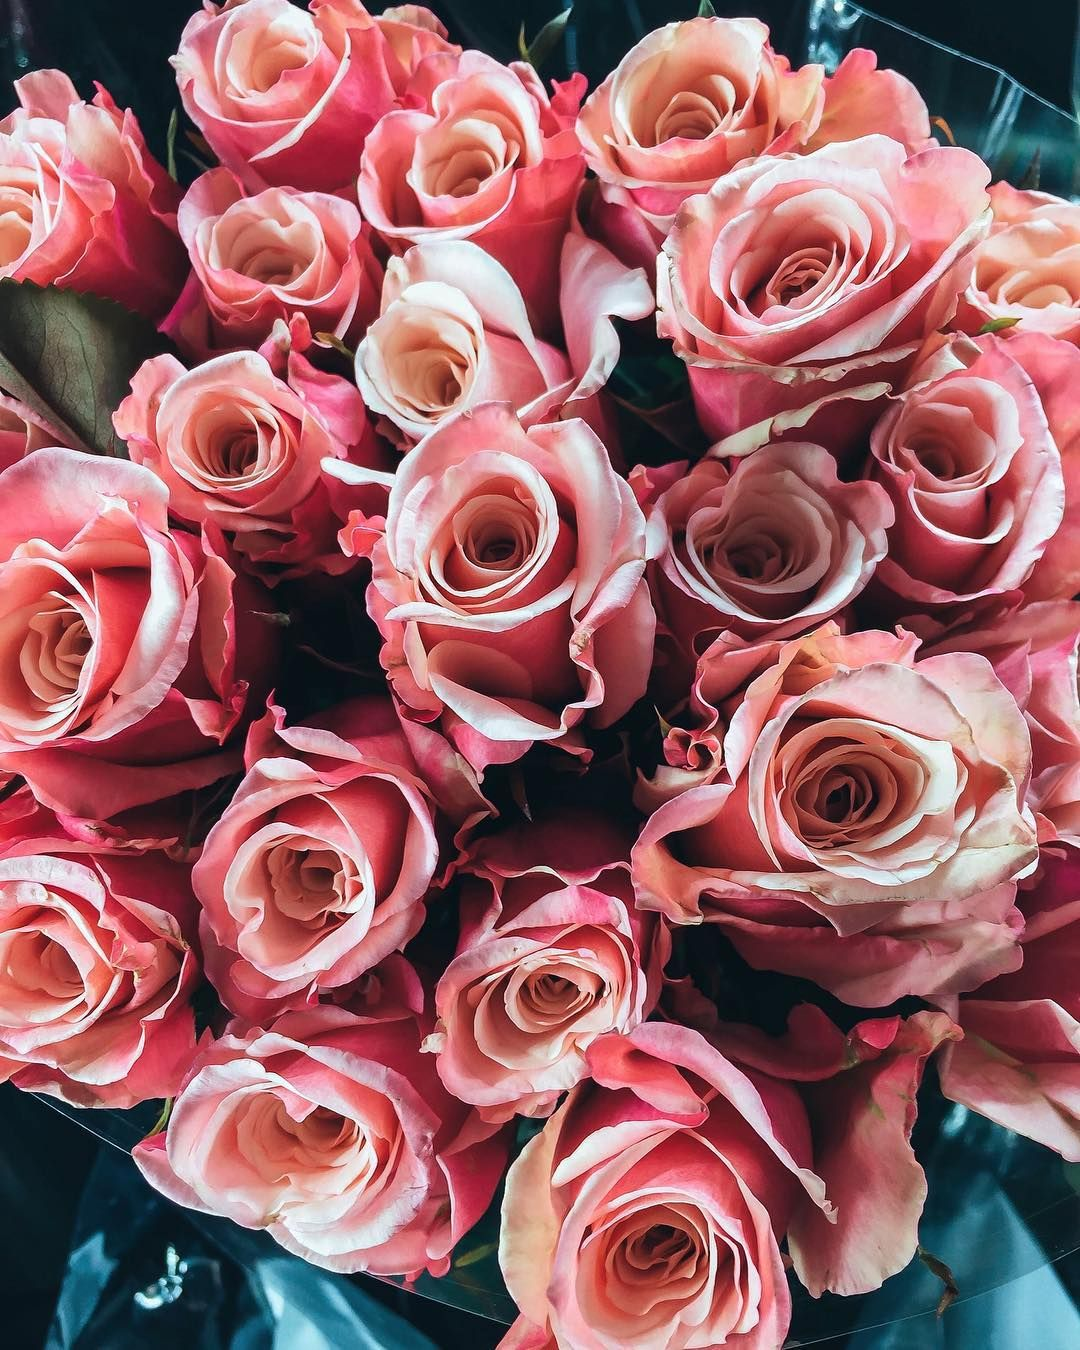 I wish that I can say someone bought these flowers for me ...